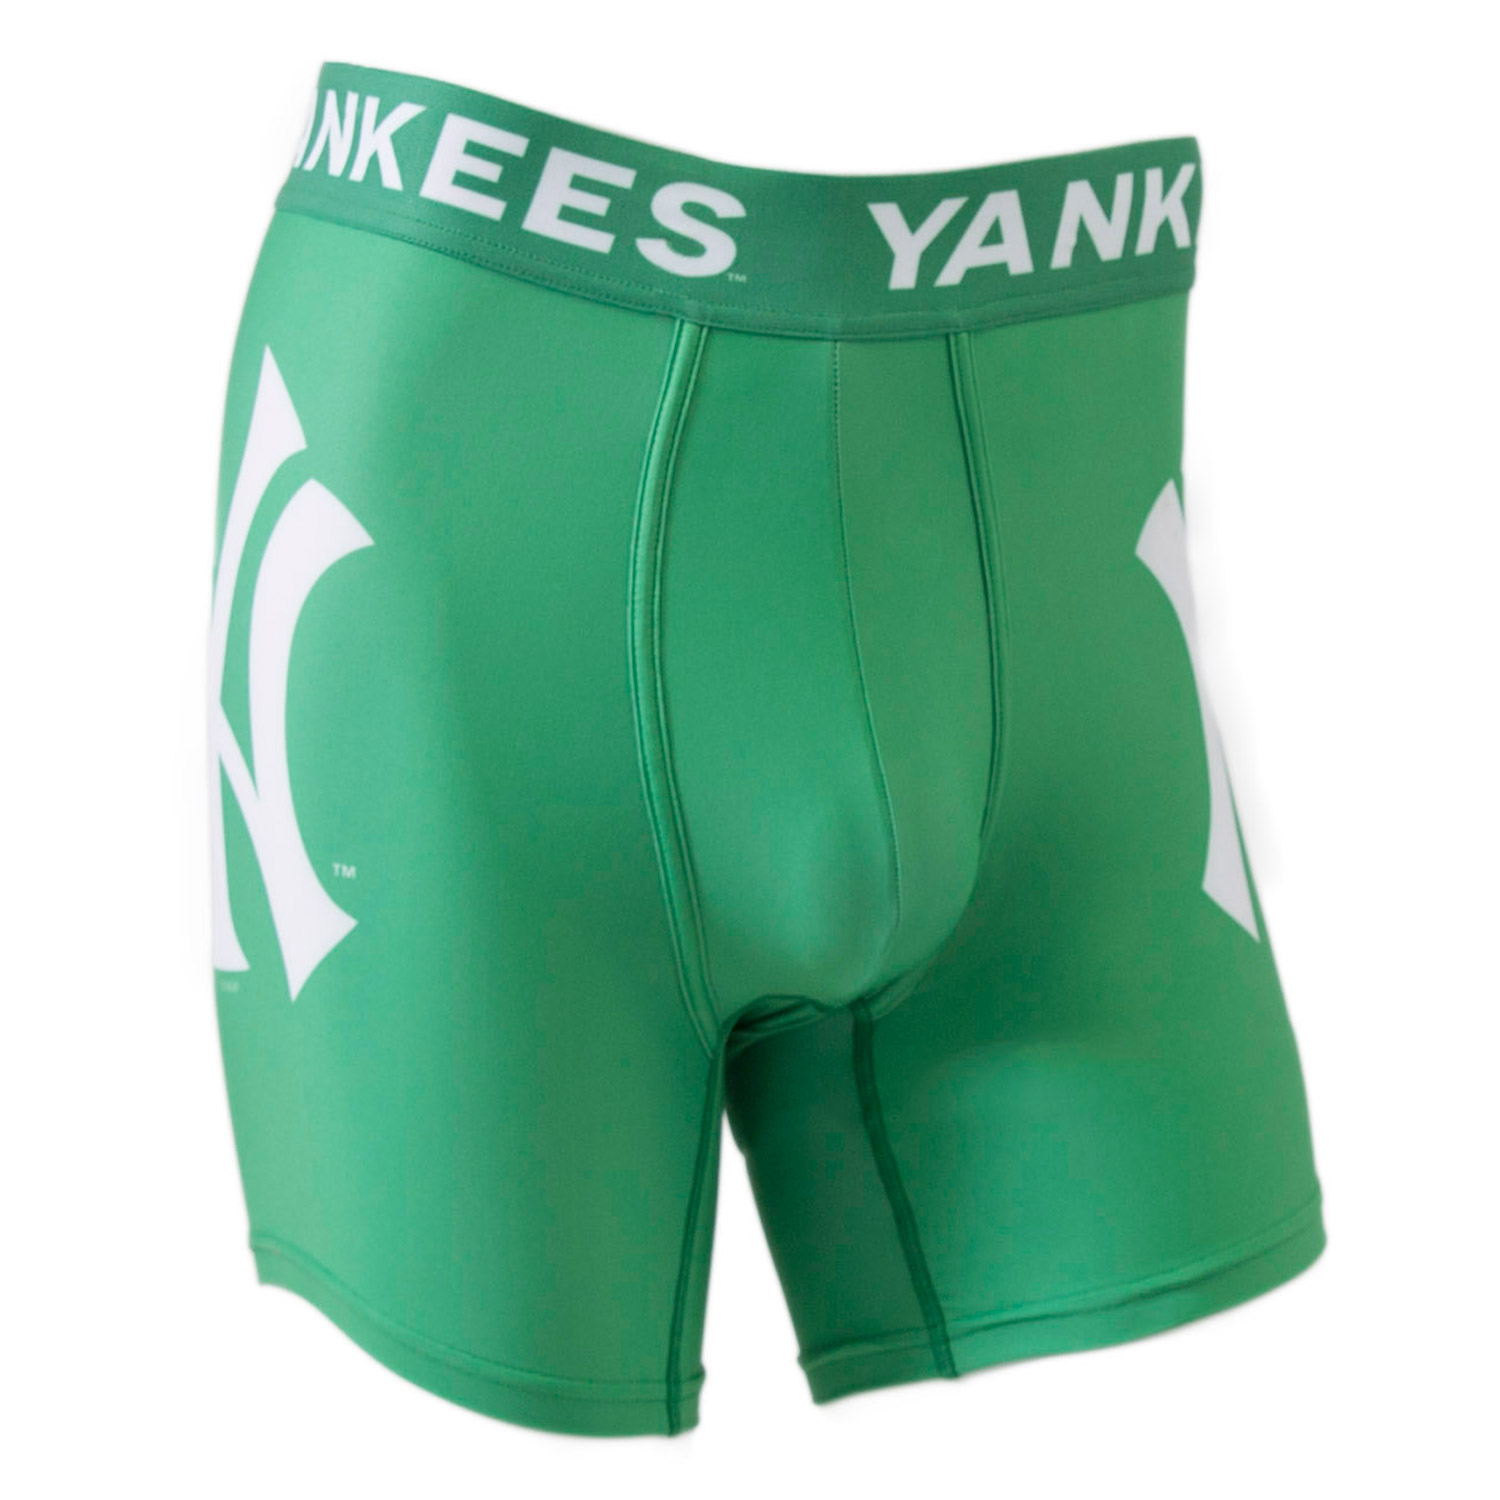 New York Yankees Concepts Sport St. Patrick's Day Boxers - Green